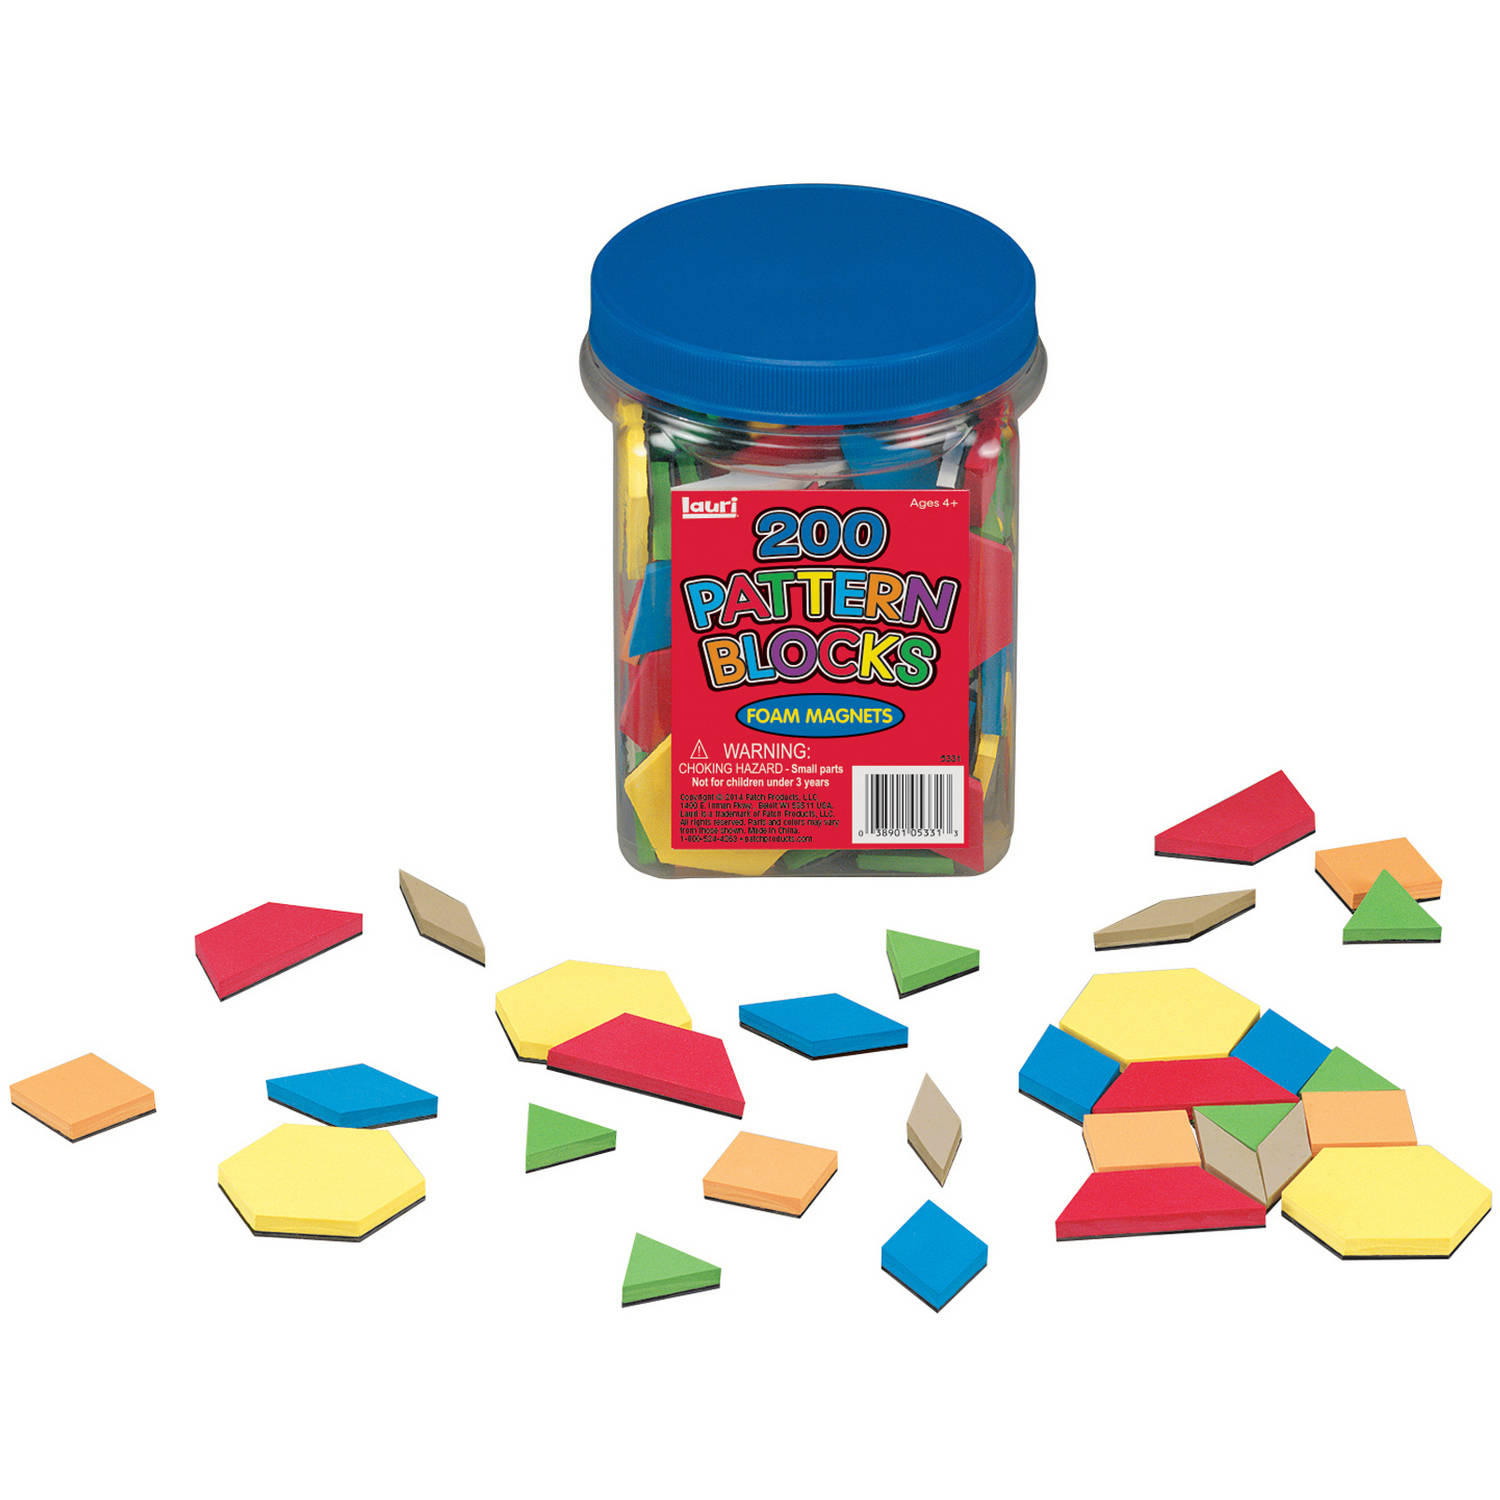 LAURI Magnetic Pattern Block, 200pc